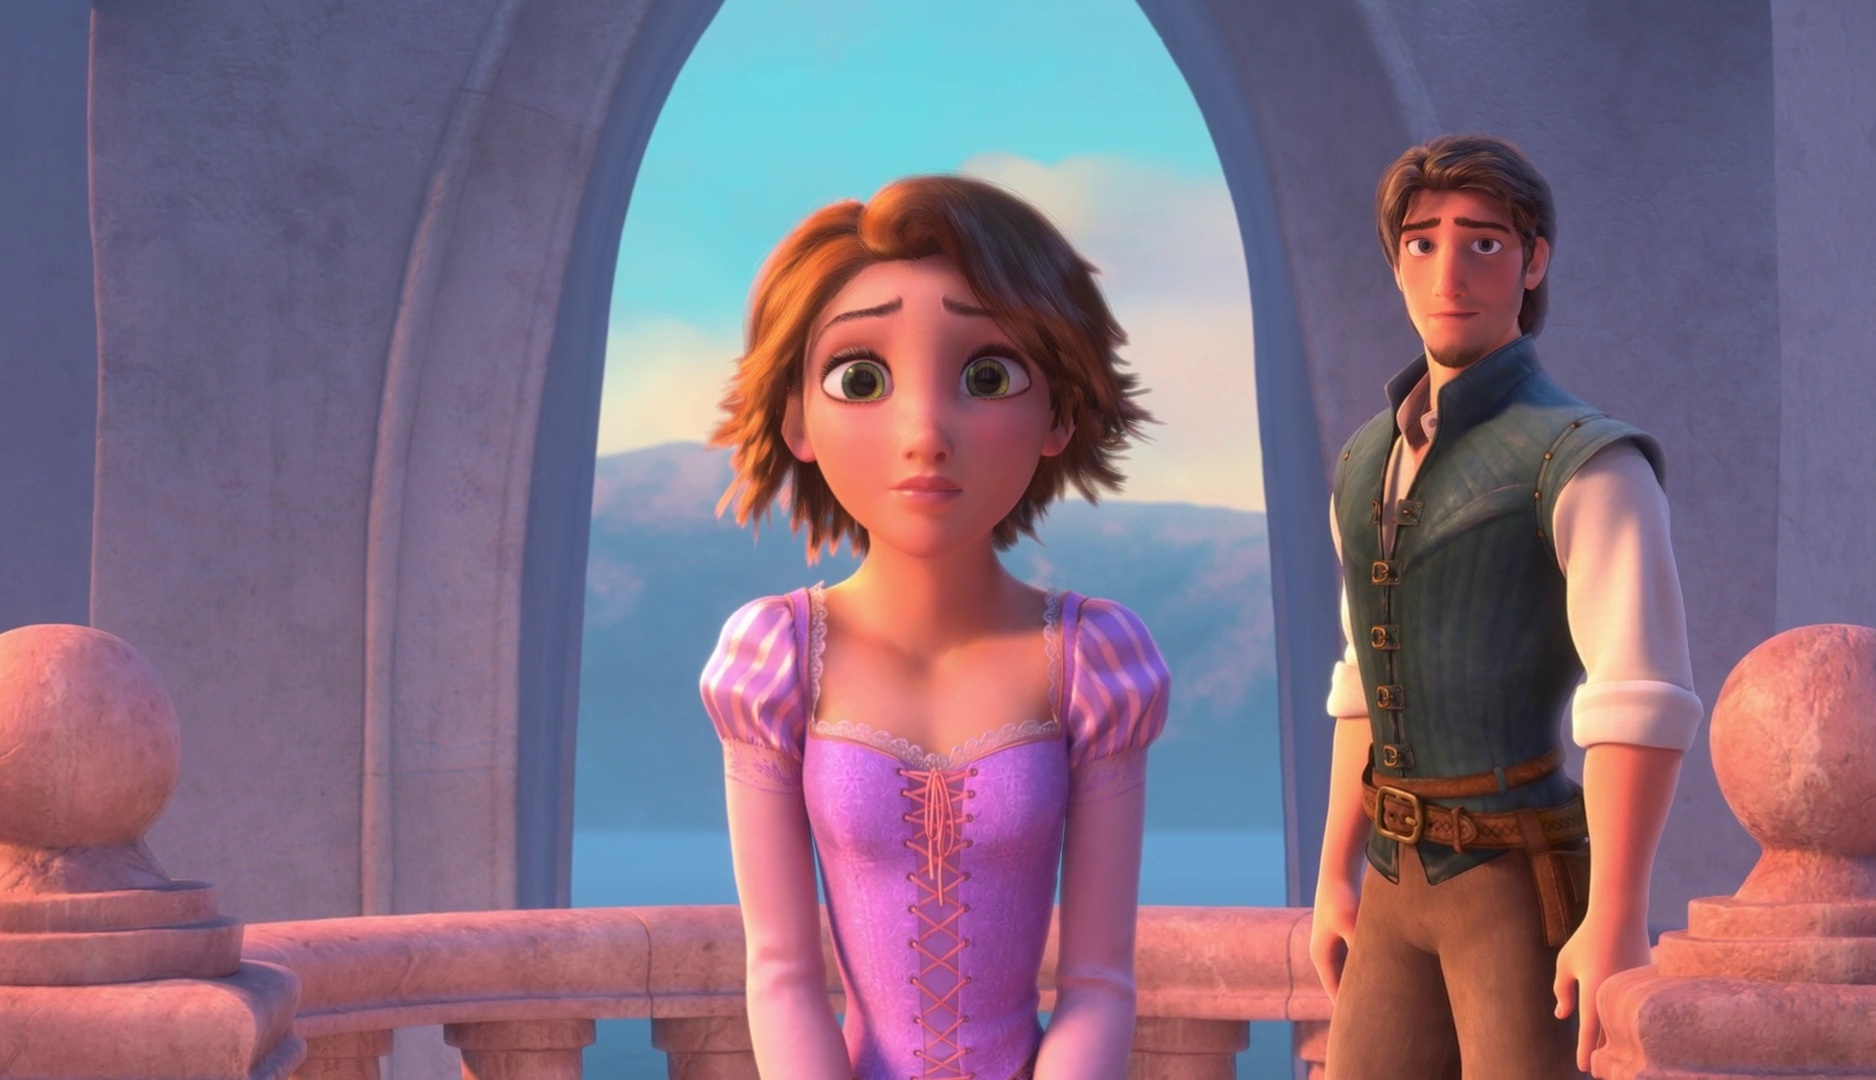 Hair color not hair style poll results disney princess fanpop - Hair Style Do You Think Rapunzel S Brown Hair Looks Like Alice S Hair In Twilight Poll Results Disney Princess Fanpop